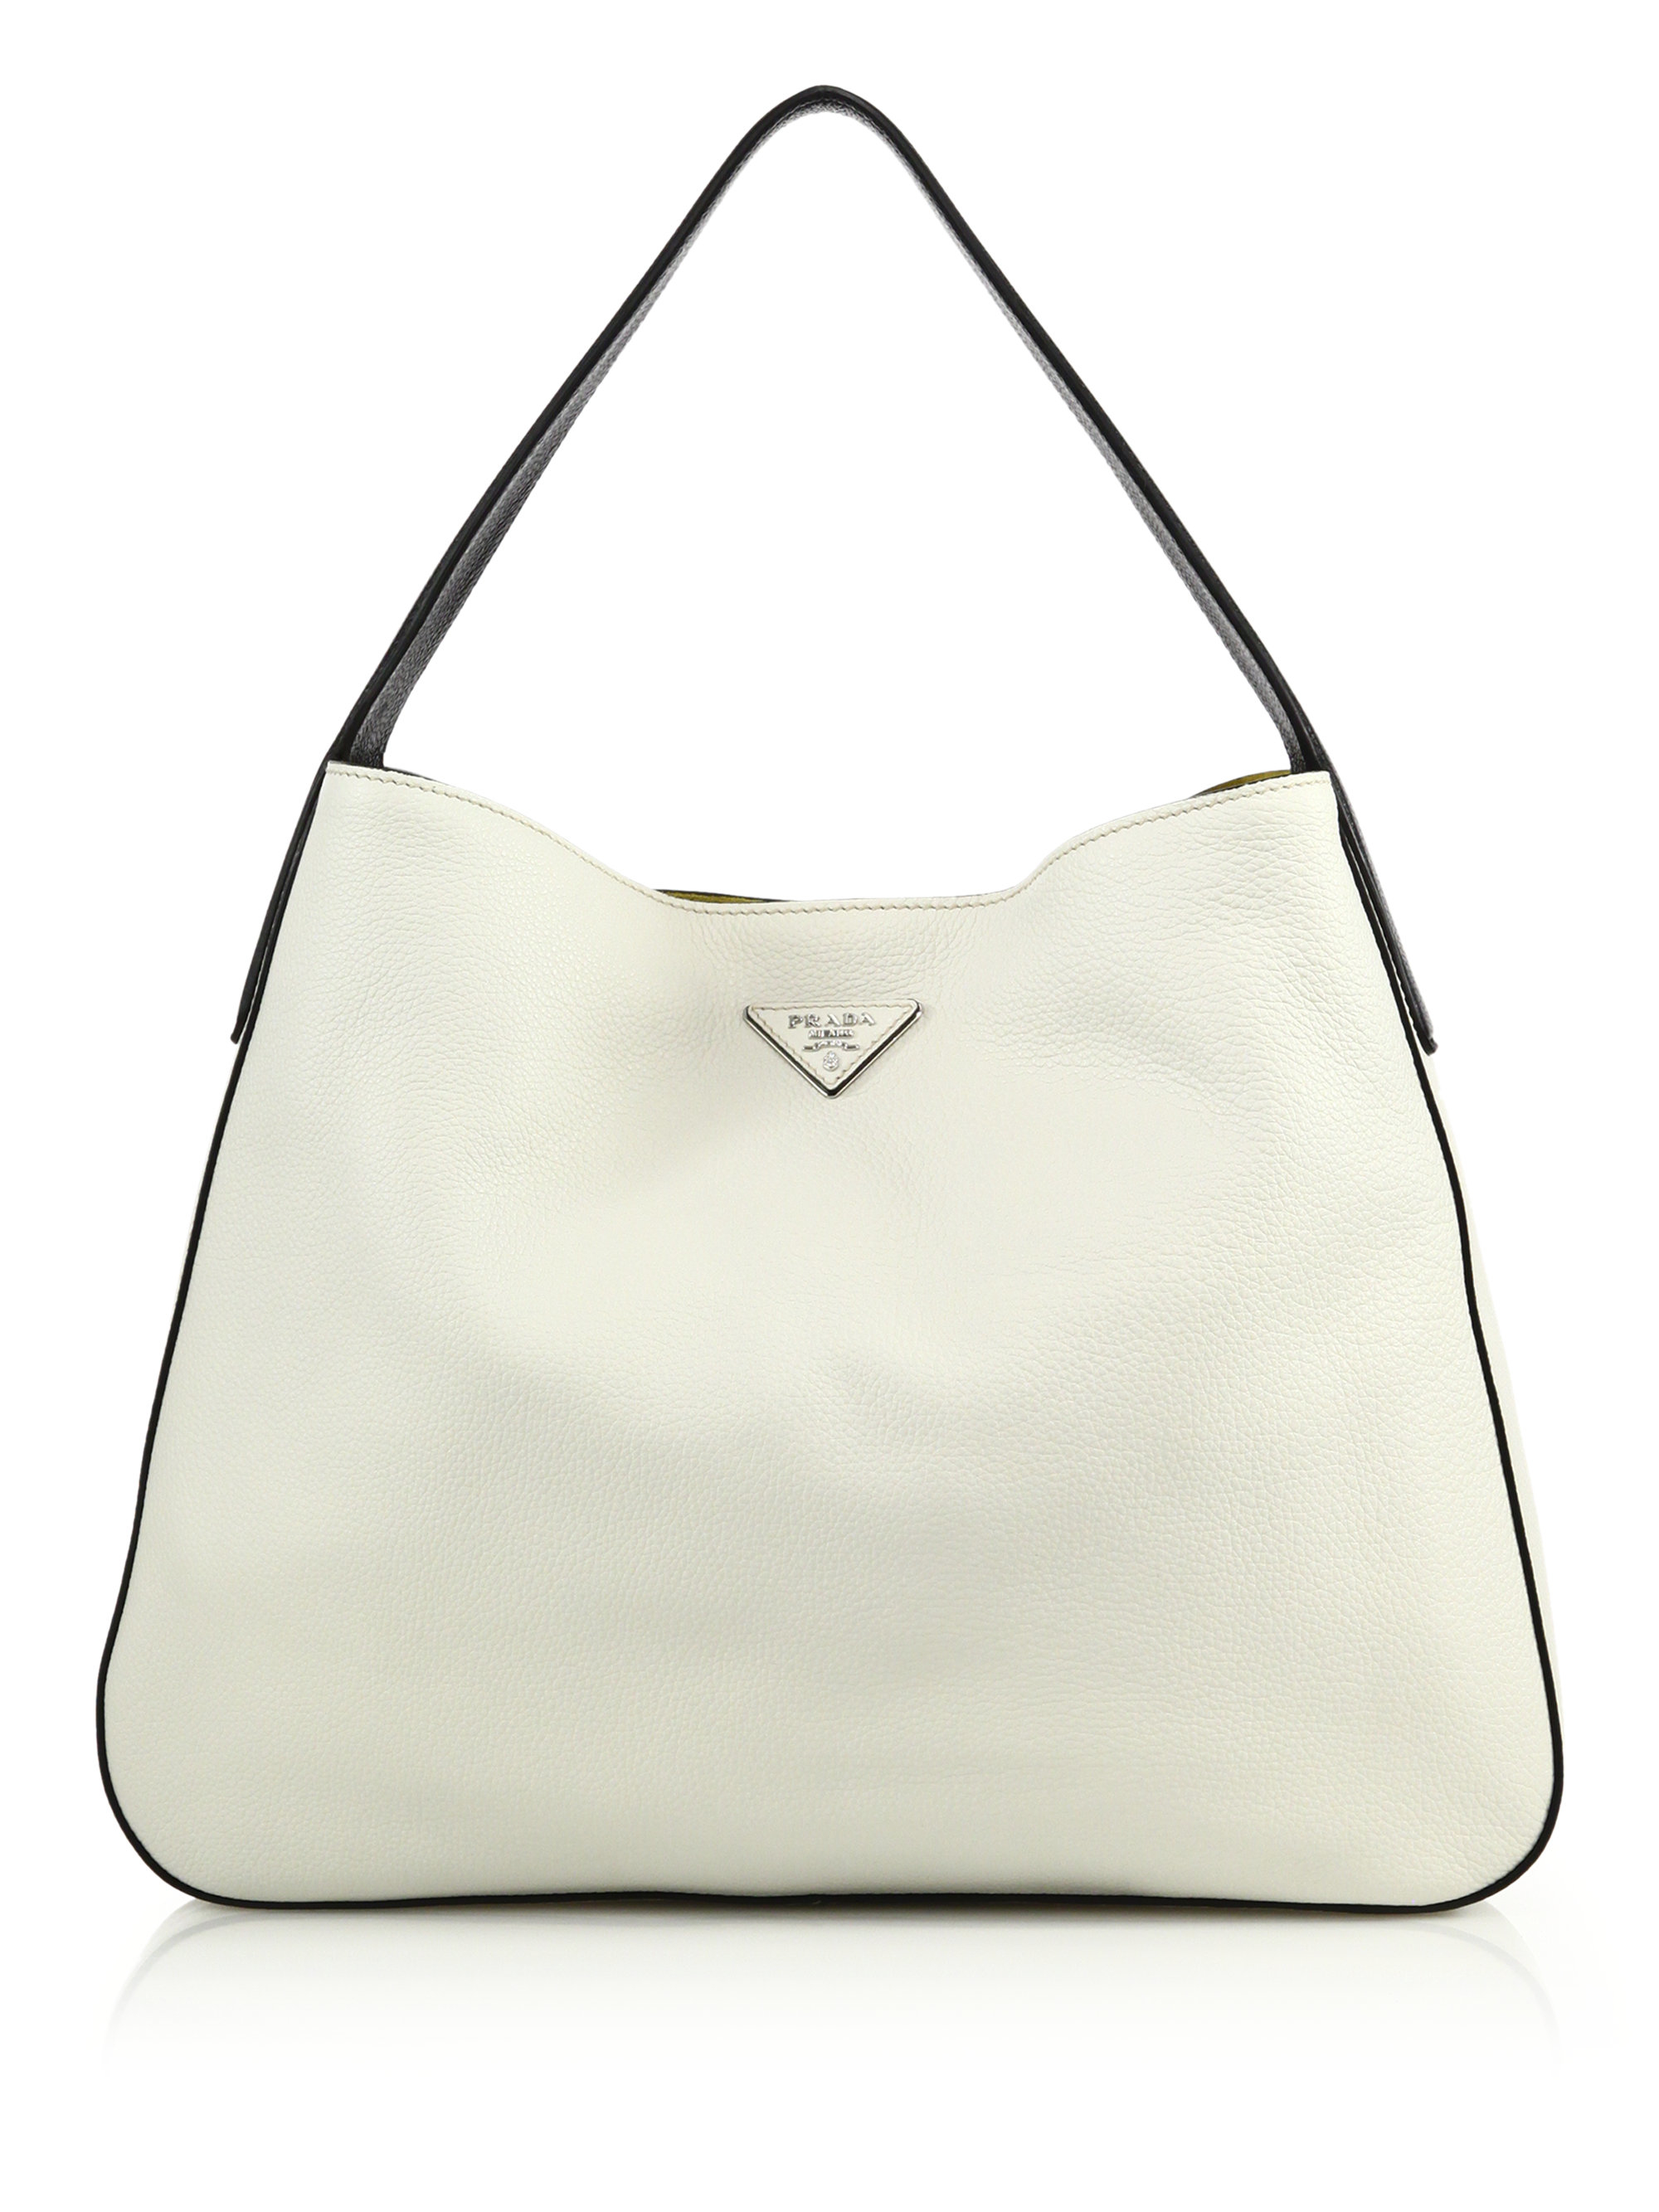 prada daino bicolor hobo bag in white lyst. Black Bedroom Furniture Sets. Home Design Ideas